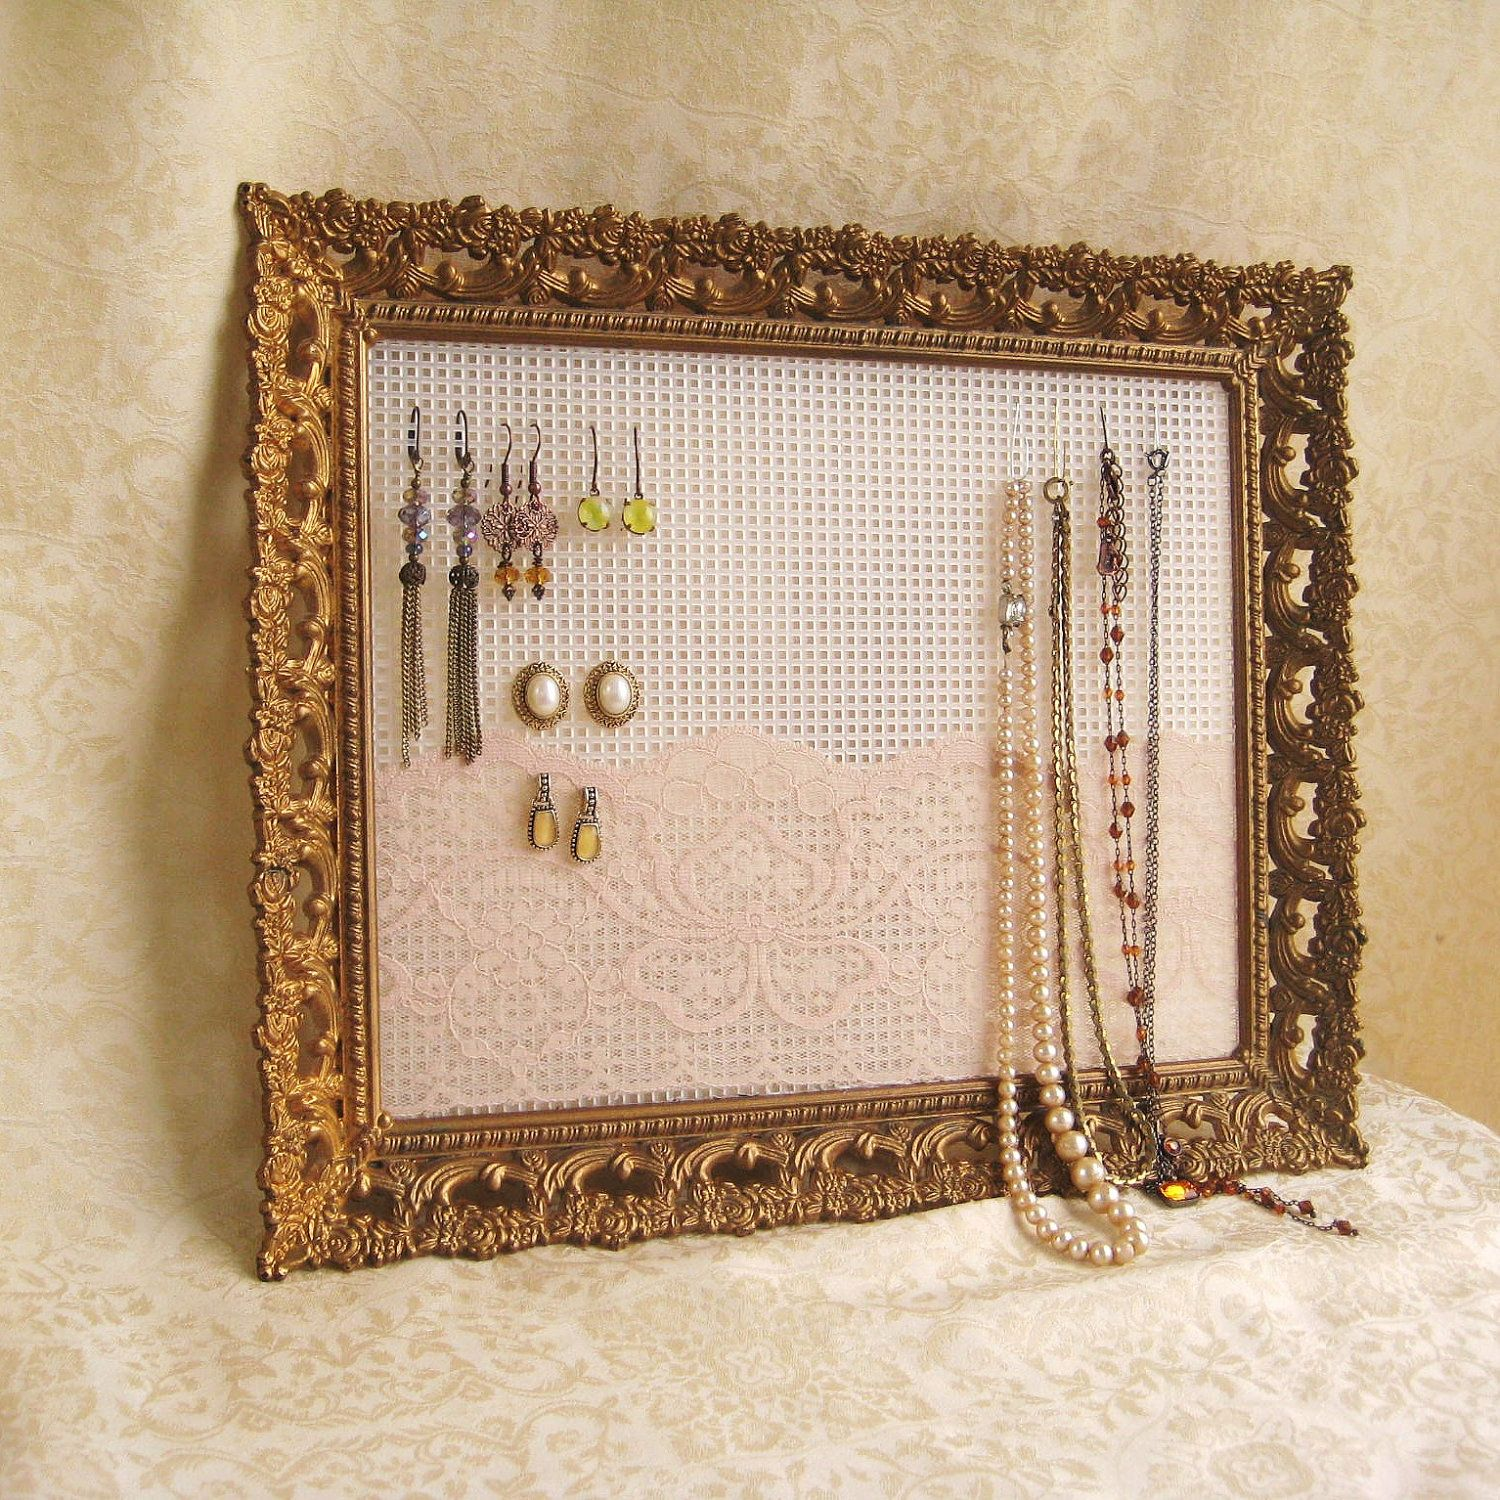 Earring Holder Jewelry Organizer Display Rustic Vintage Upcycled Picture Frame